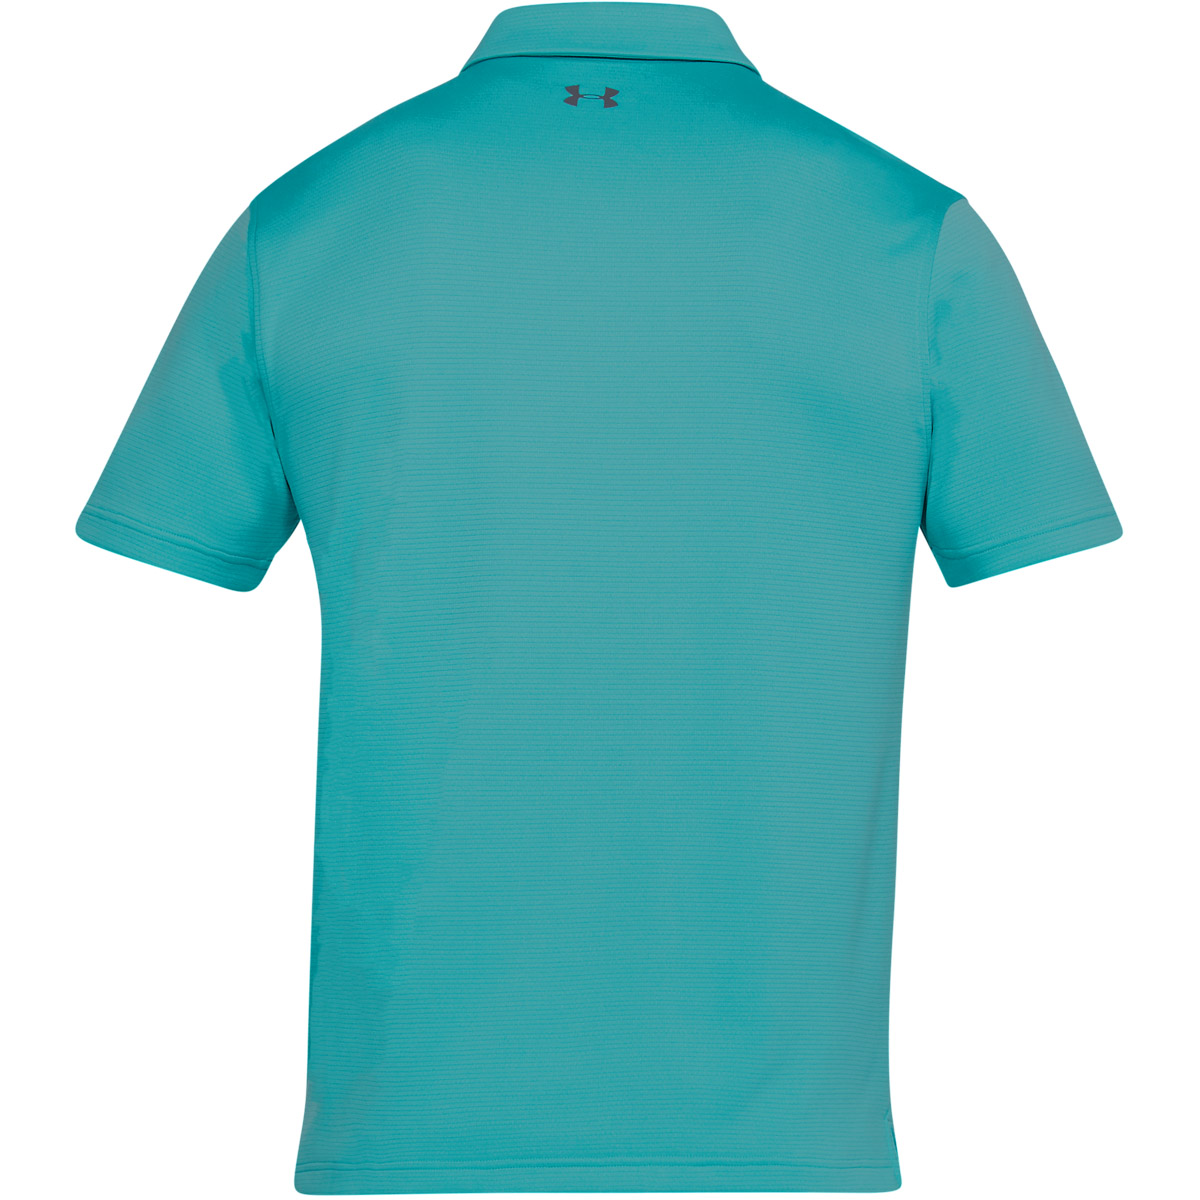 Under-Armour-Mens-Golf-Tech-Wicking-Textured-Soft-Light-Polo-Shirt thumbnail 69